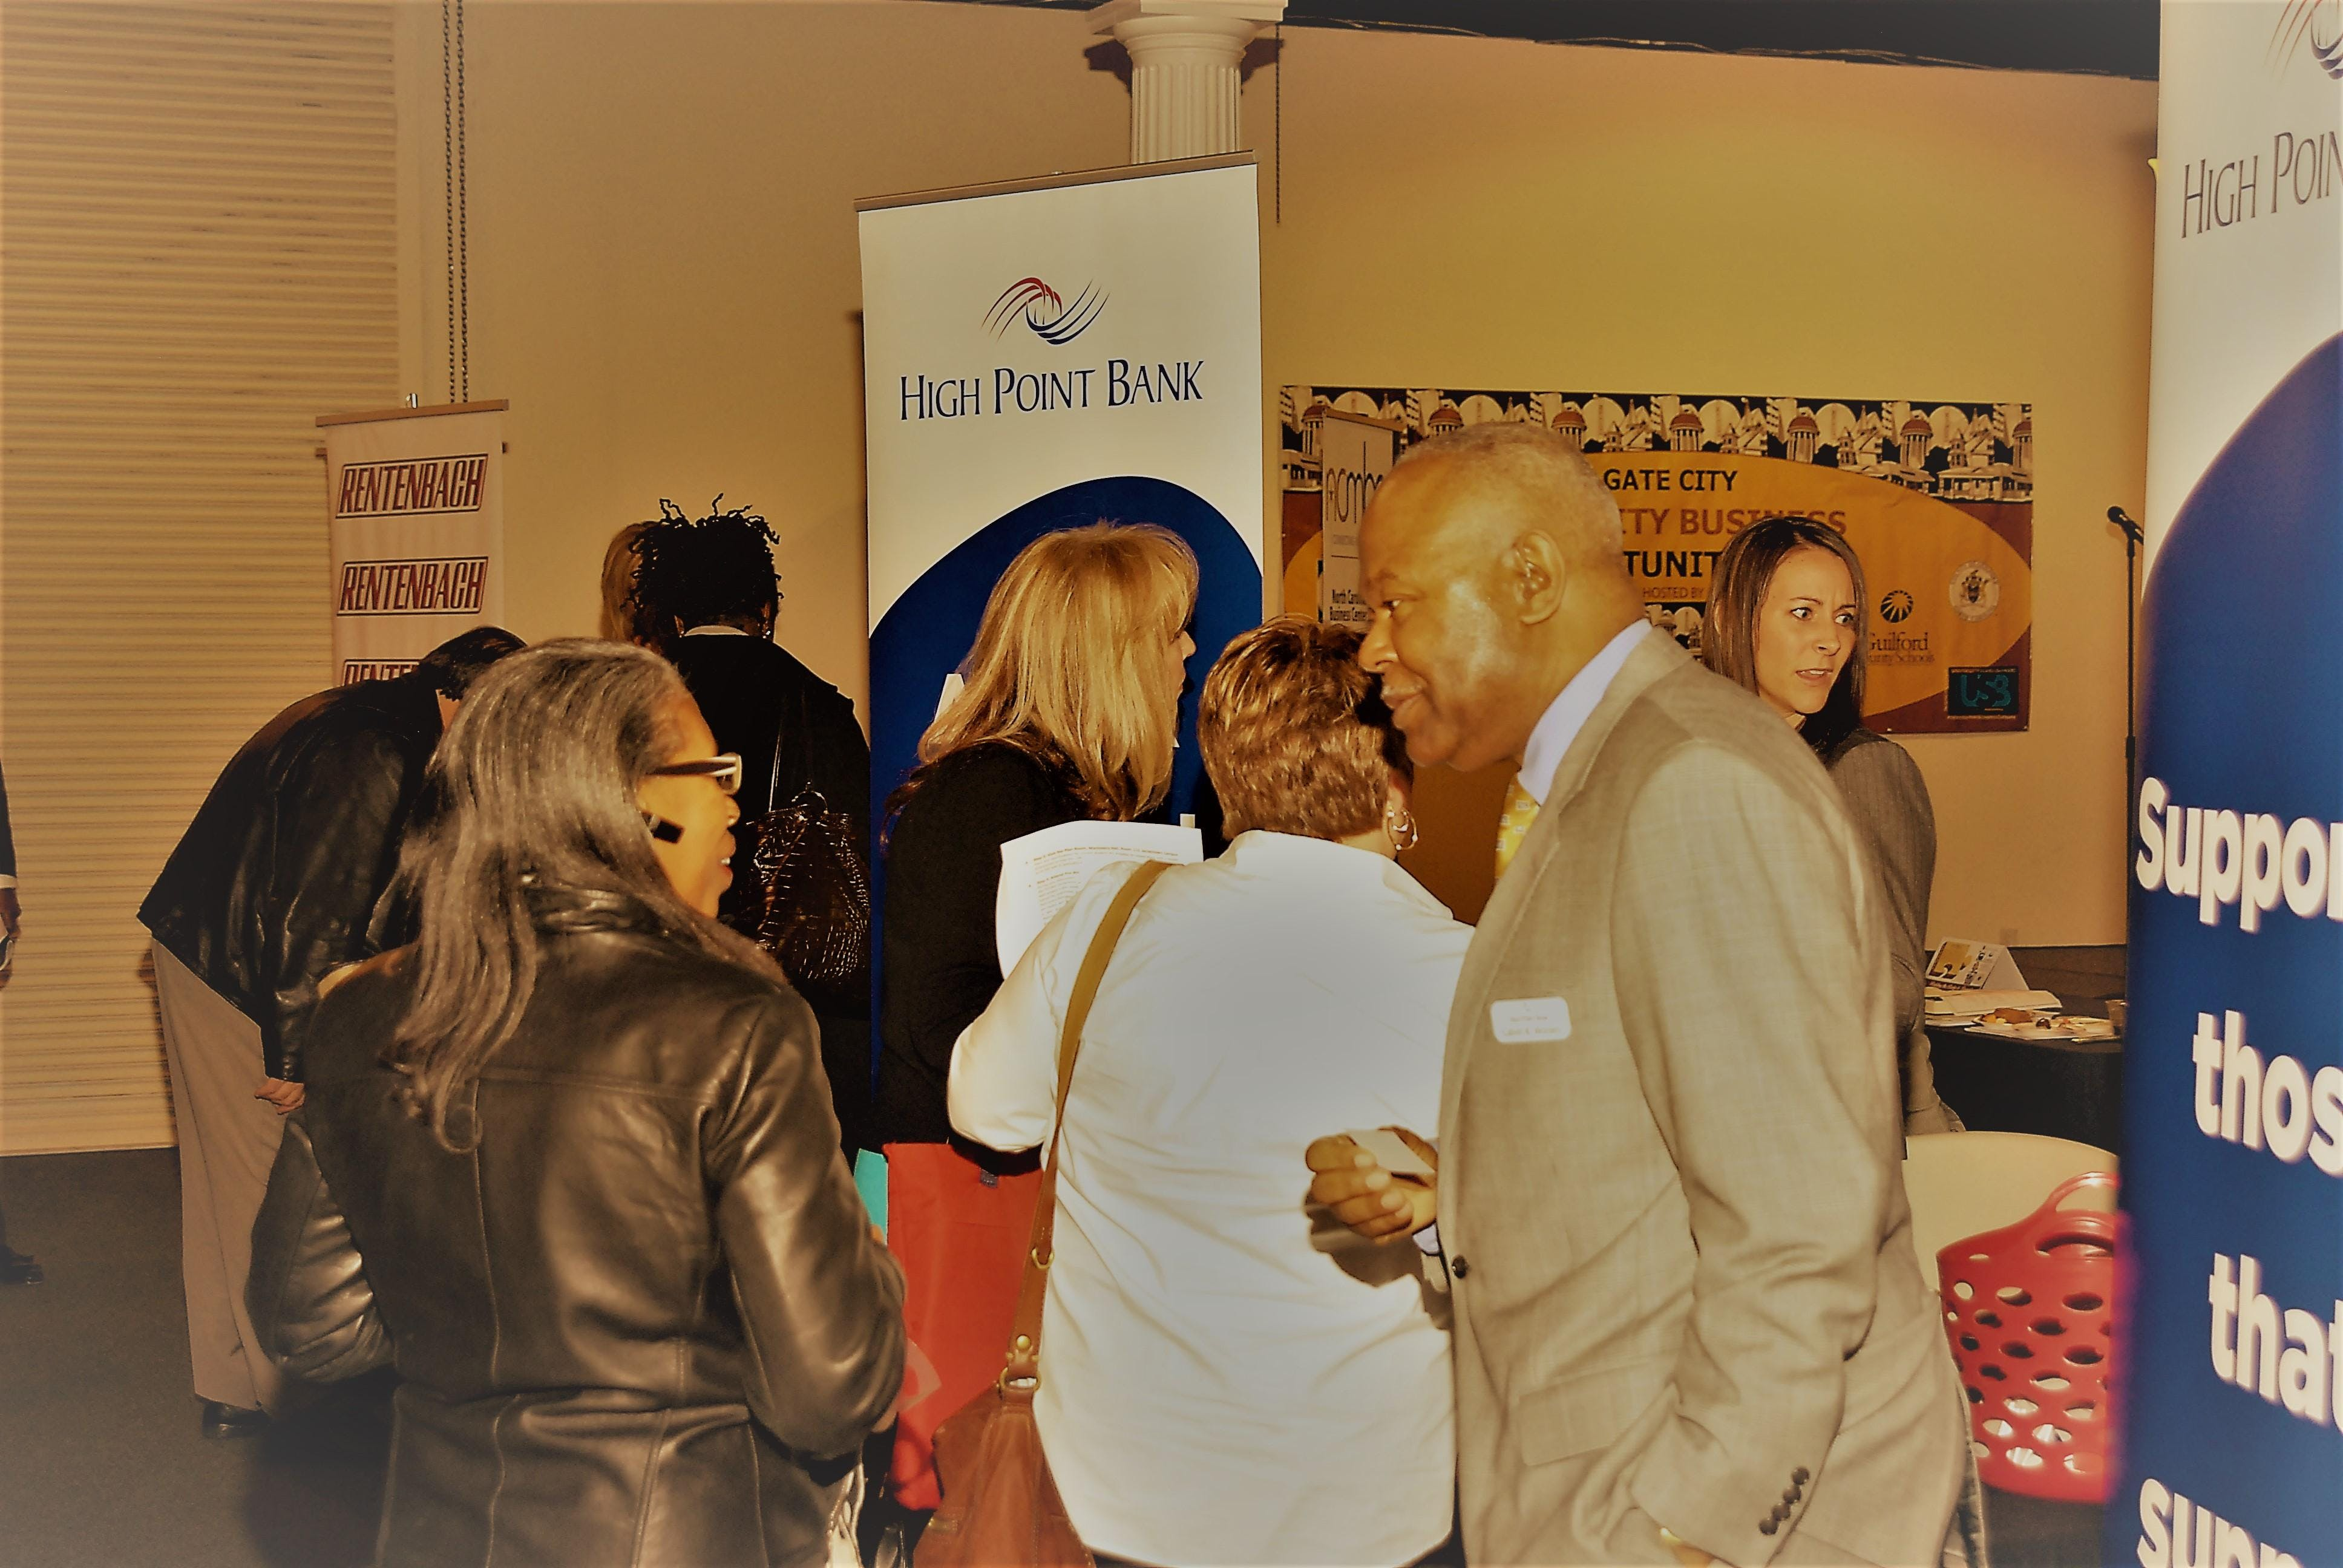 7th Annual Gate City Minority Business Opport